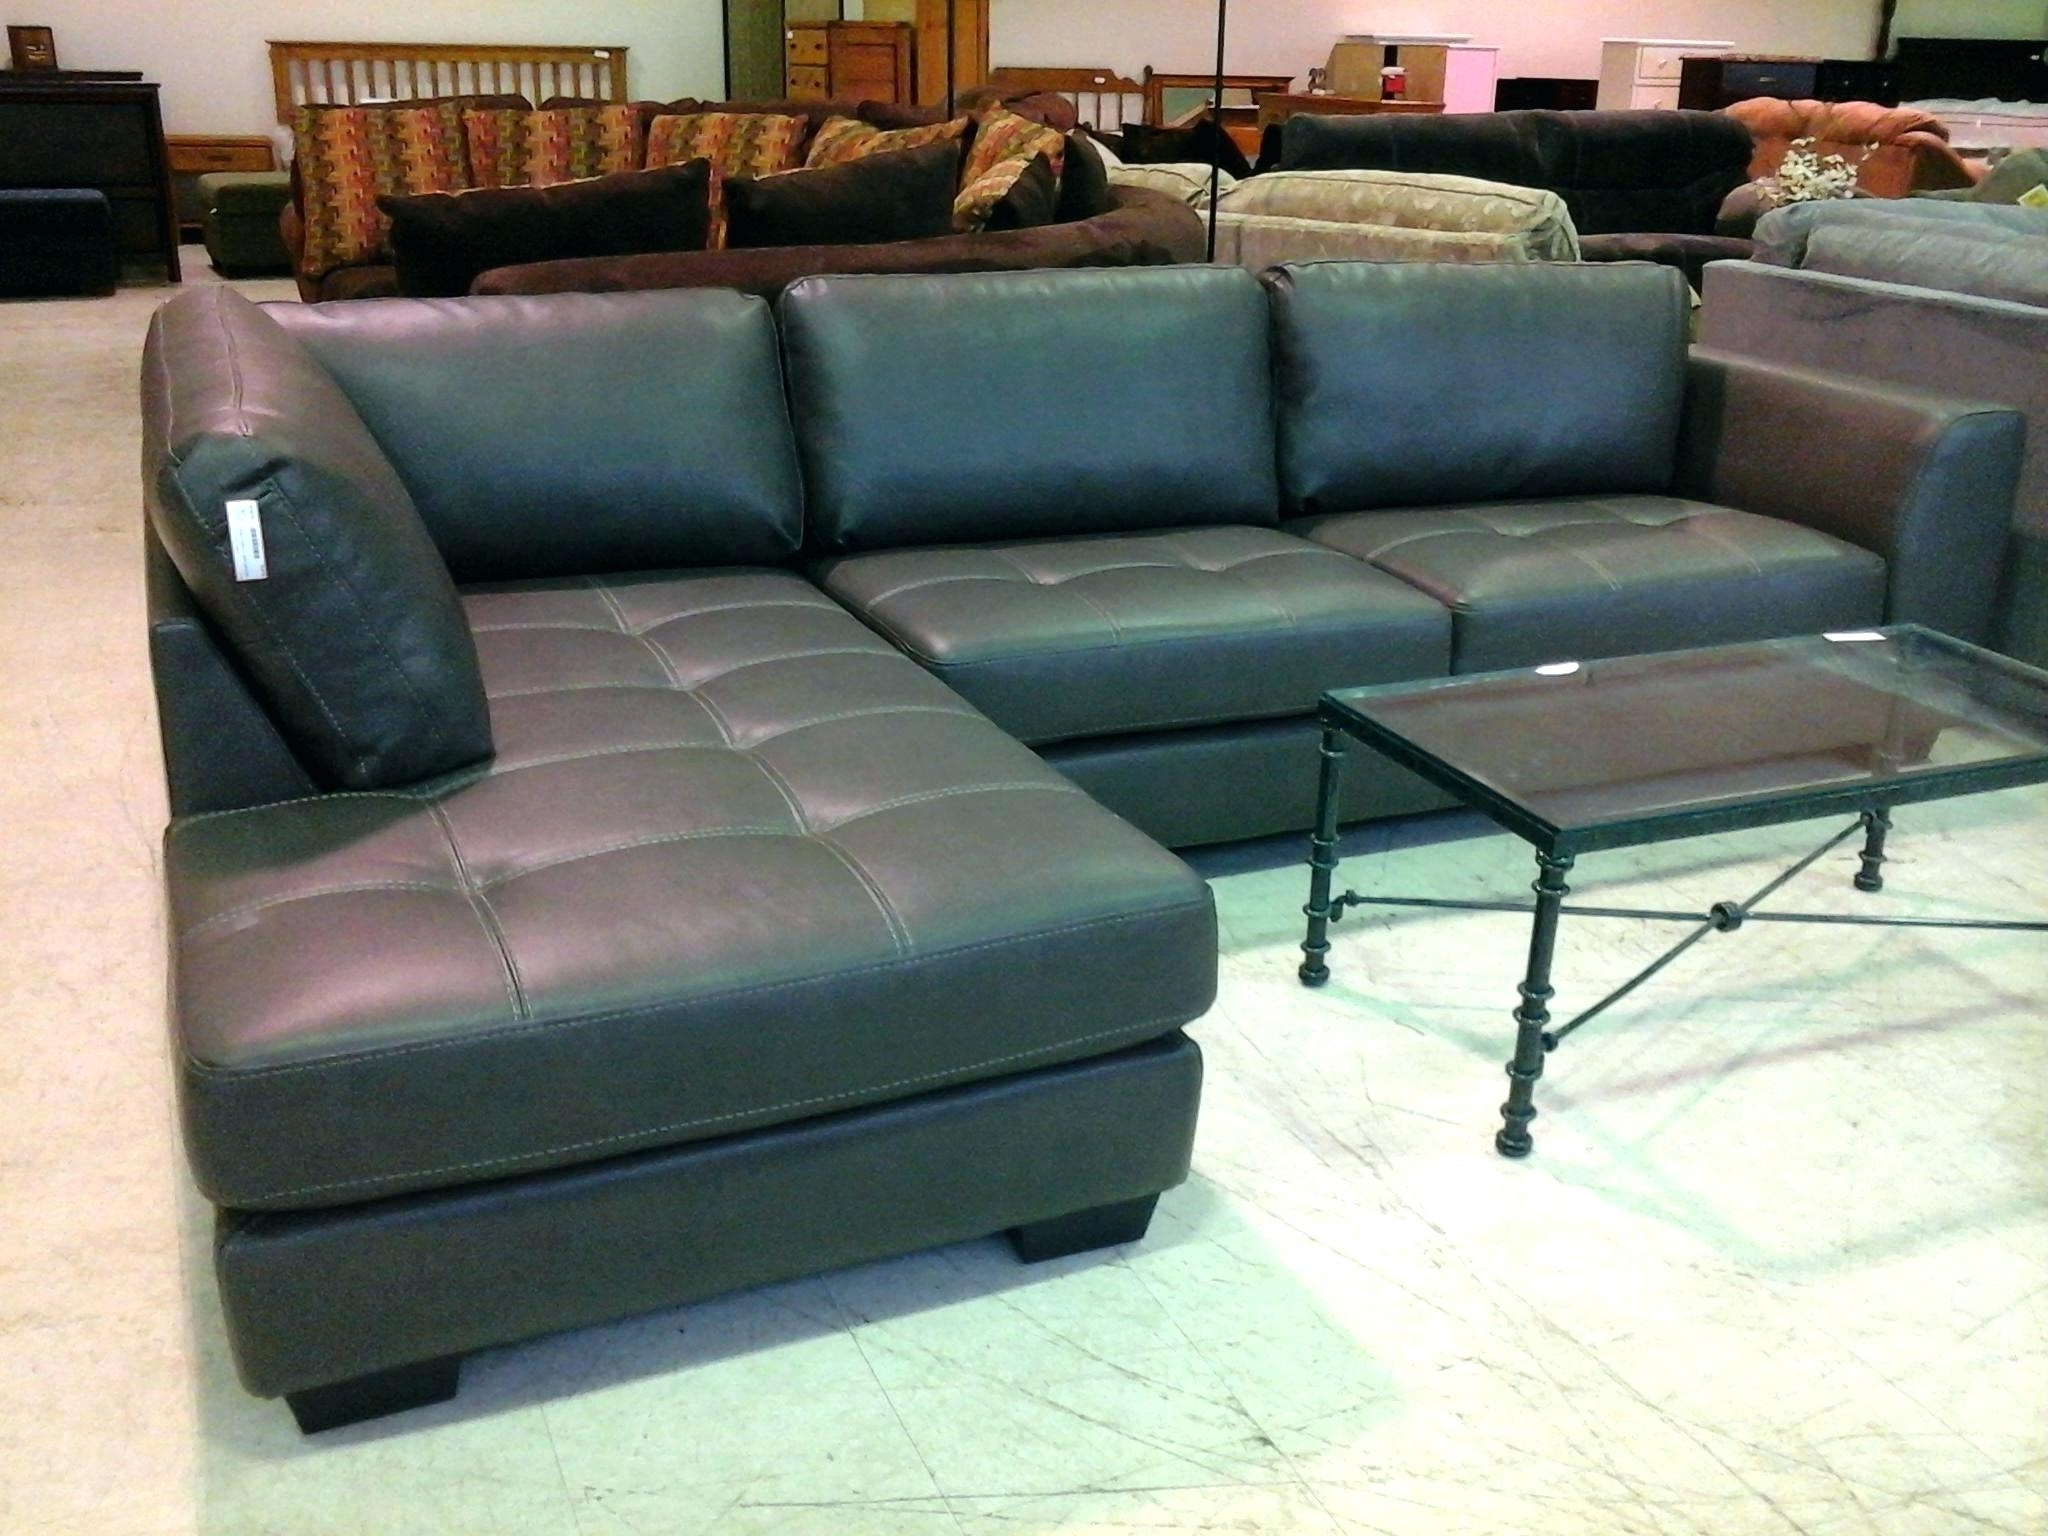 Trendy Sears Sectional Sofa Natuzzi Clearwater Grey – Jasonatavastrealty Pertaining To Craftsman Sectional Sofas (View 18 of 20)